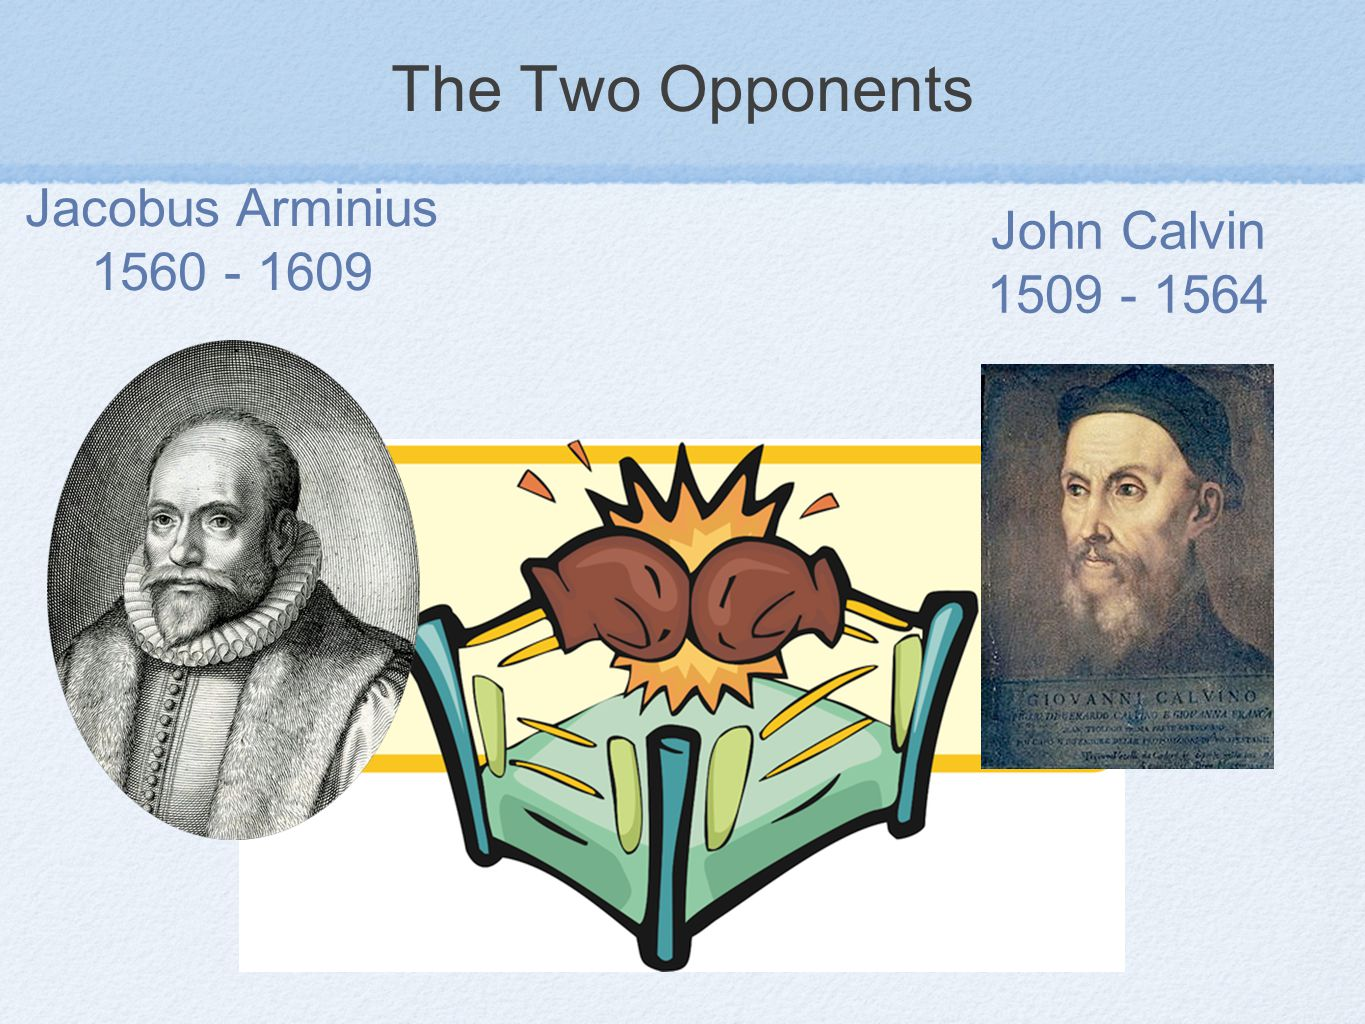 The Two Opponents John Calvin Jacobus Arminius